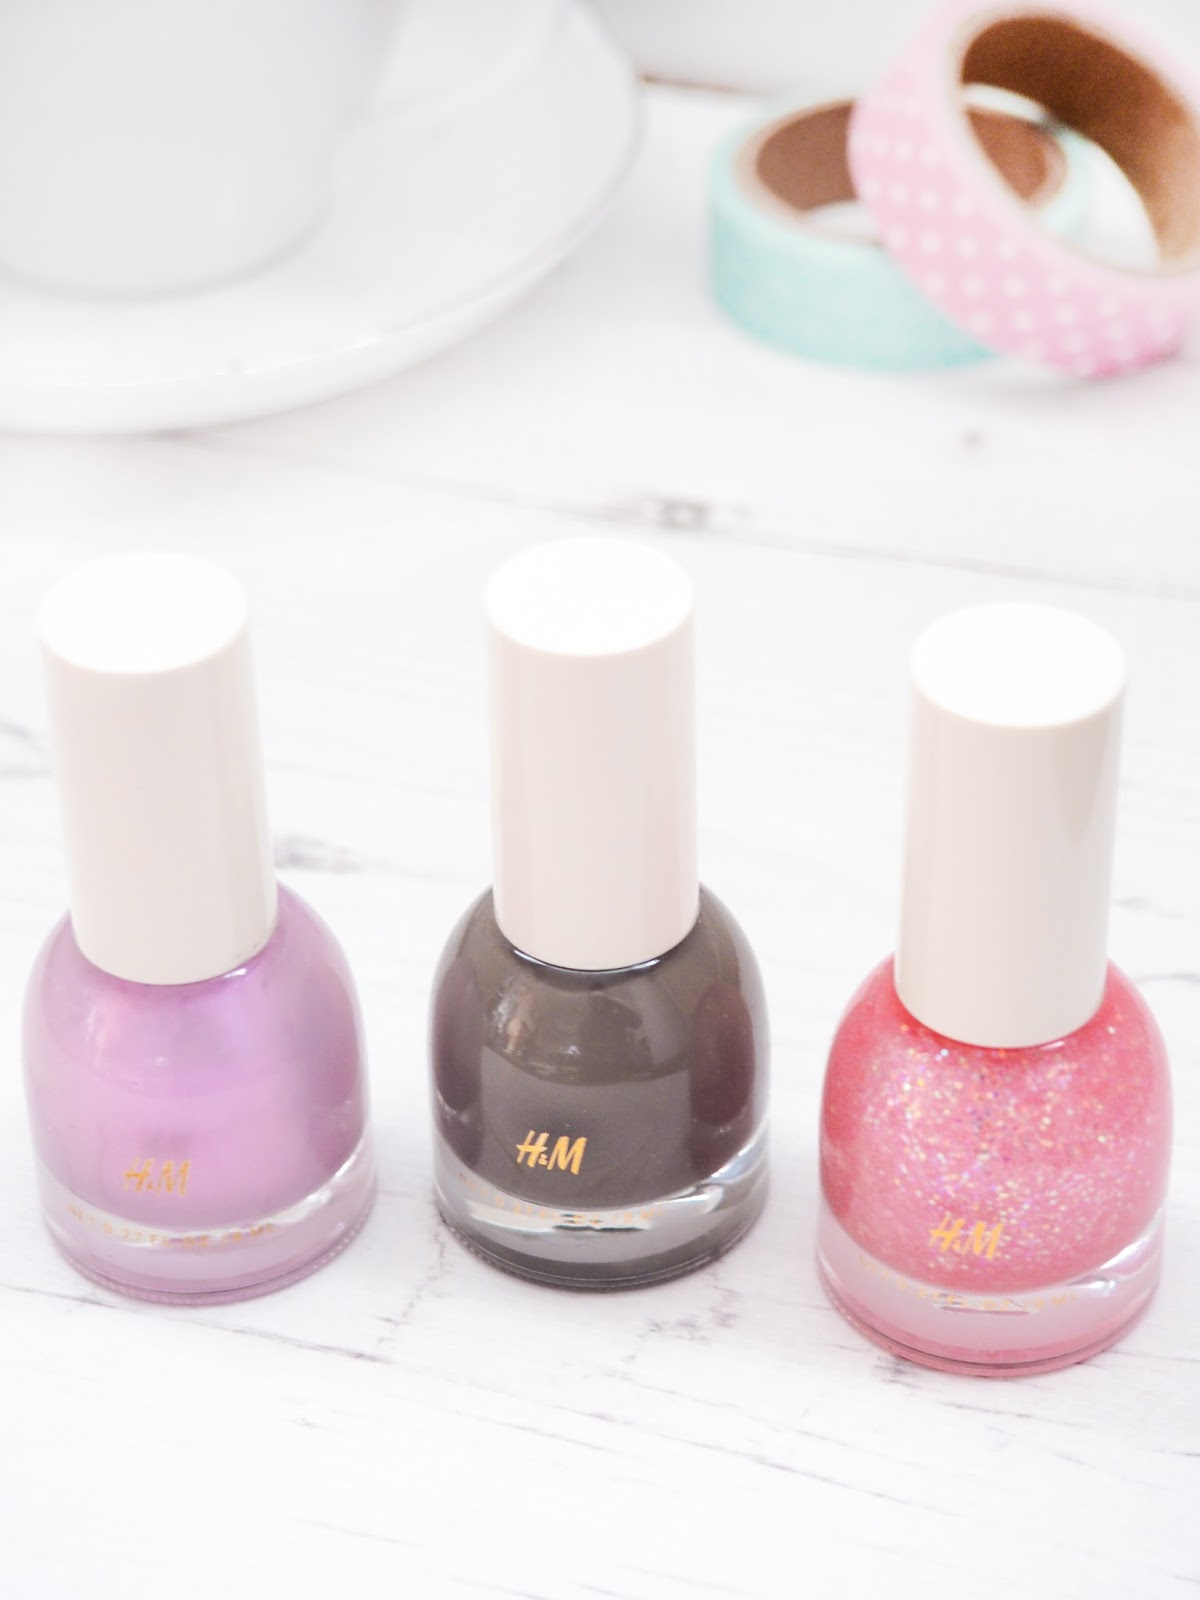 H&M Beauty Nail Polishes